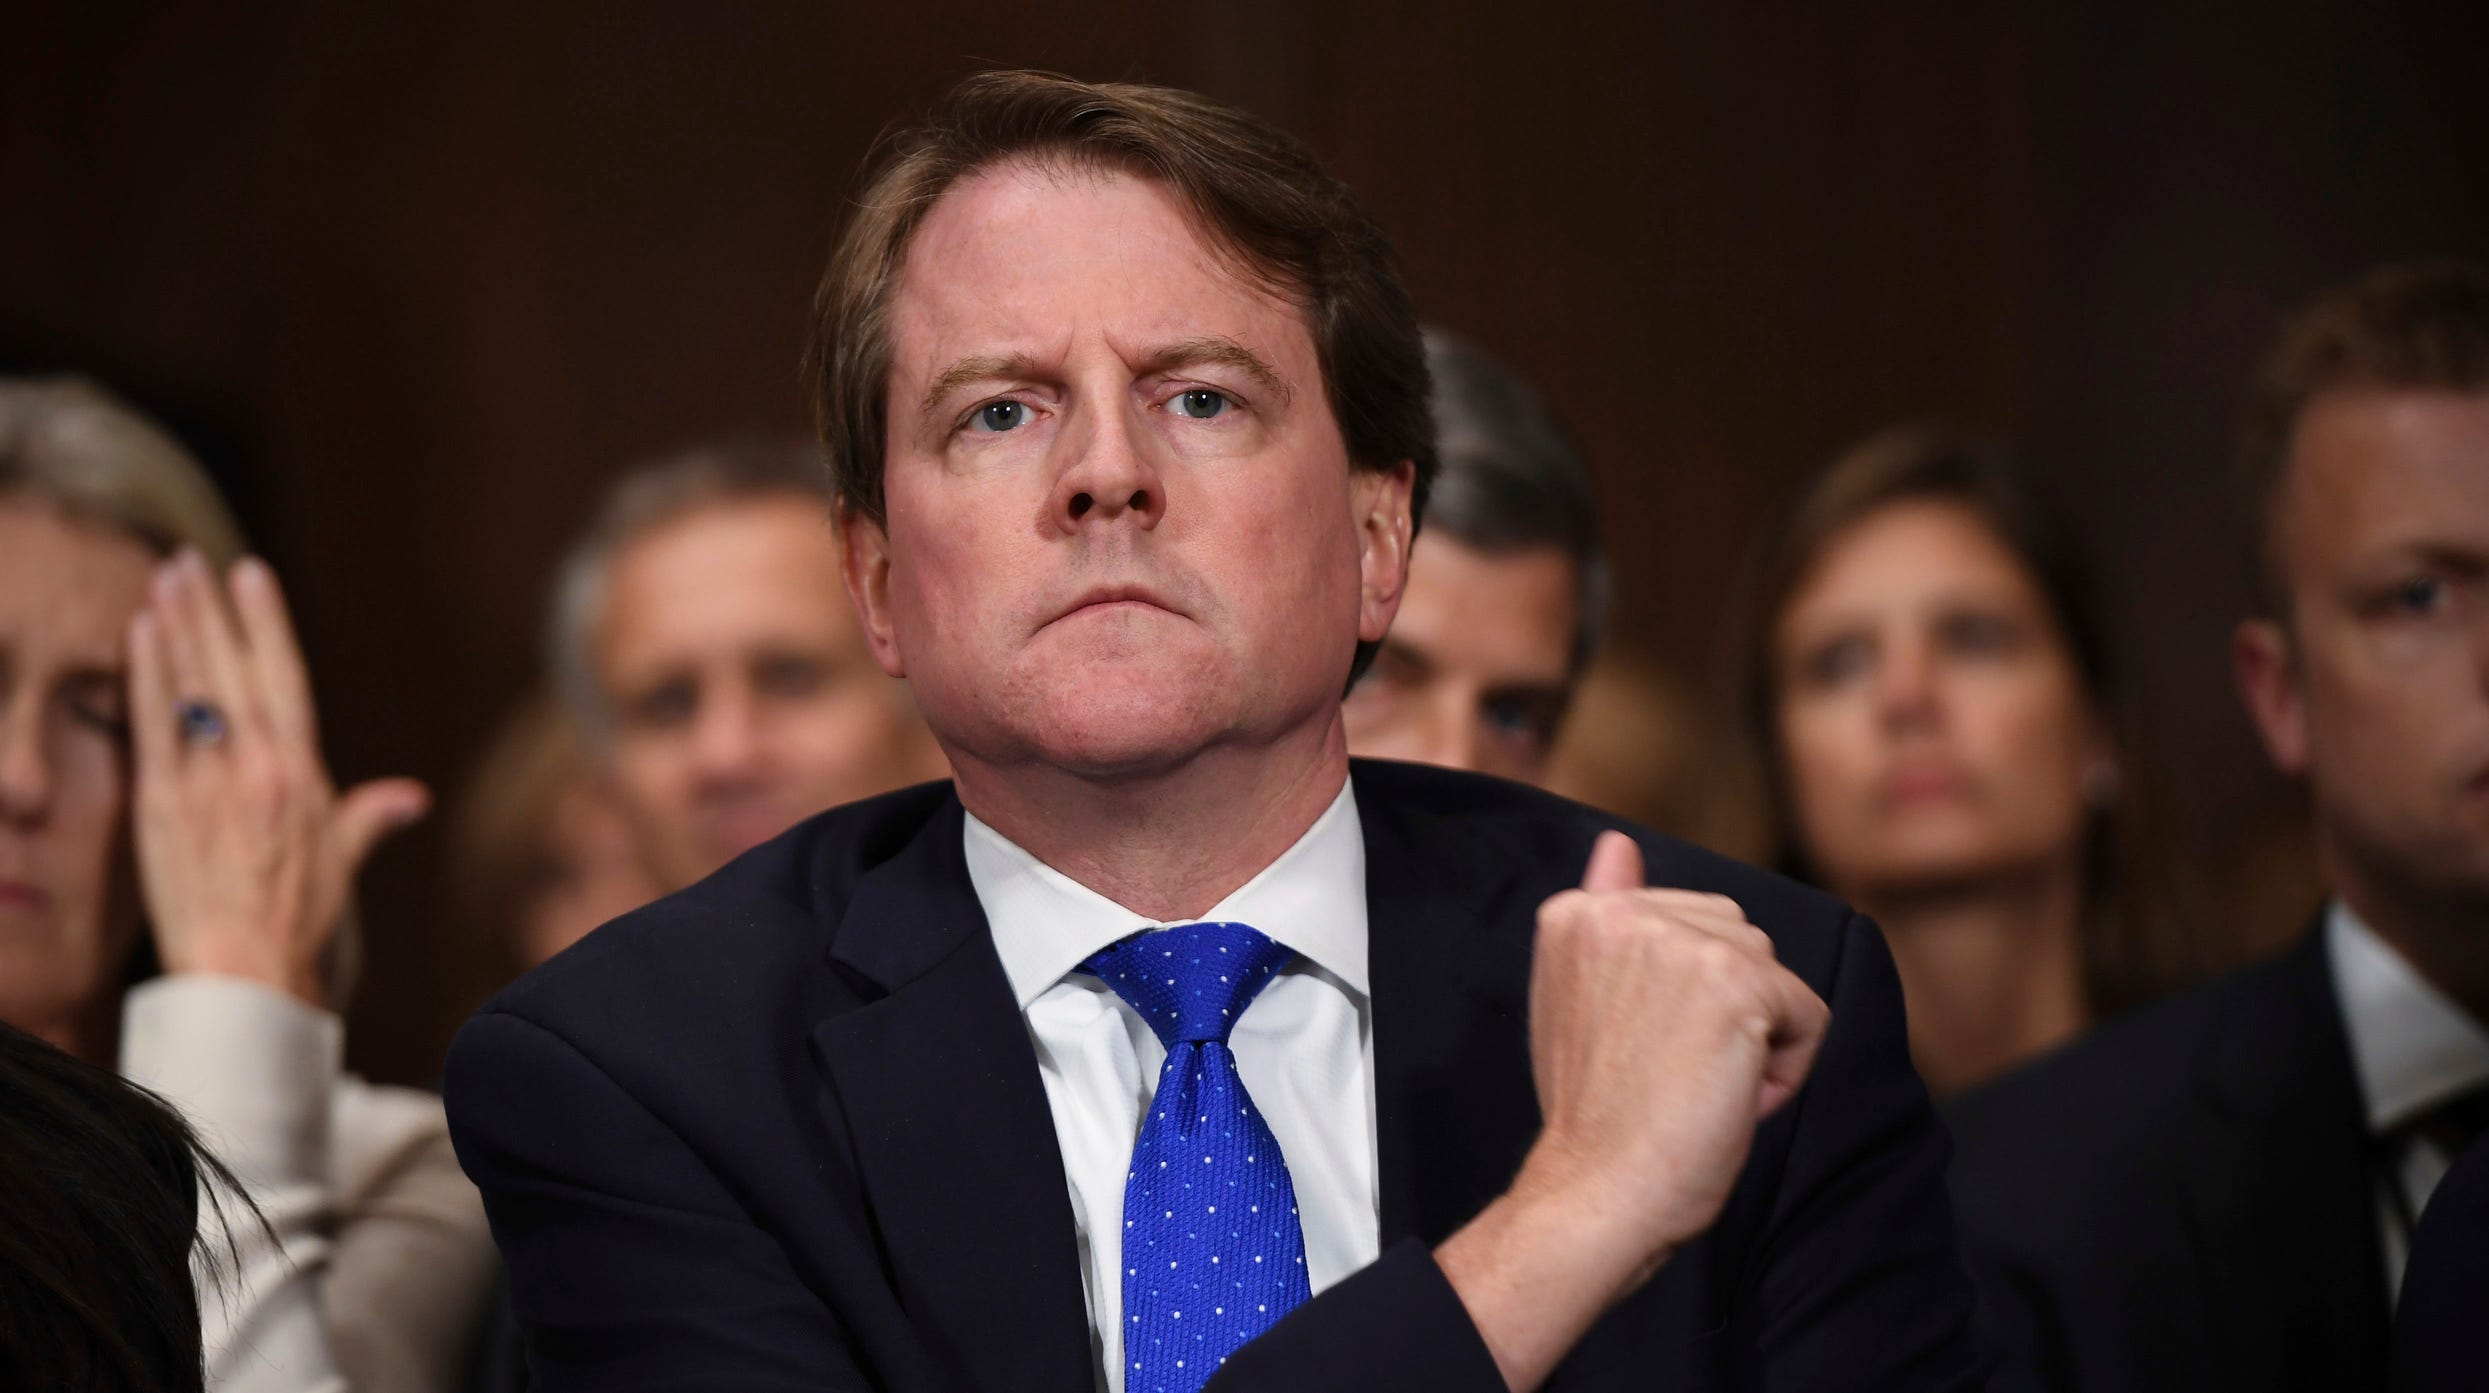 White House counsel Don McGahn listens as Supreme court nominee Brett Kavanaugh testifies before the Senate Judiciary Committee, Thursday.